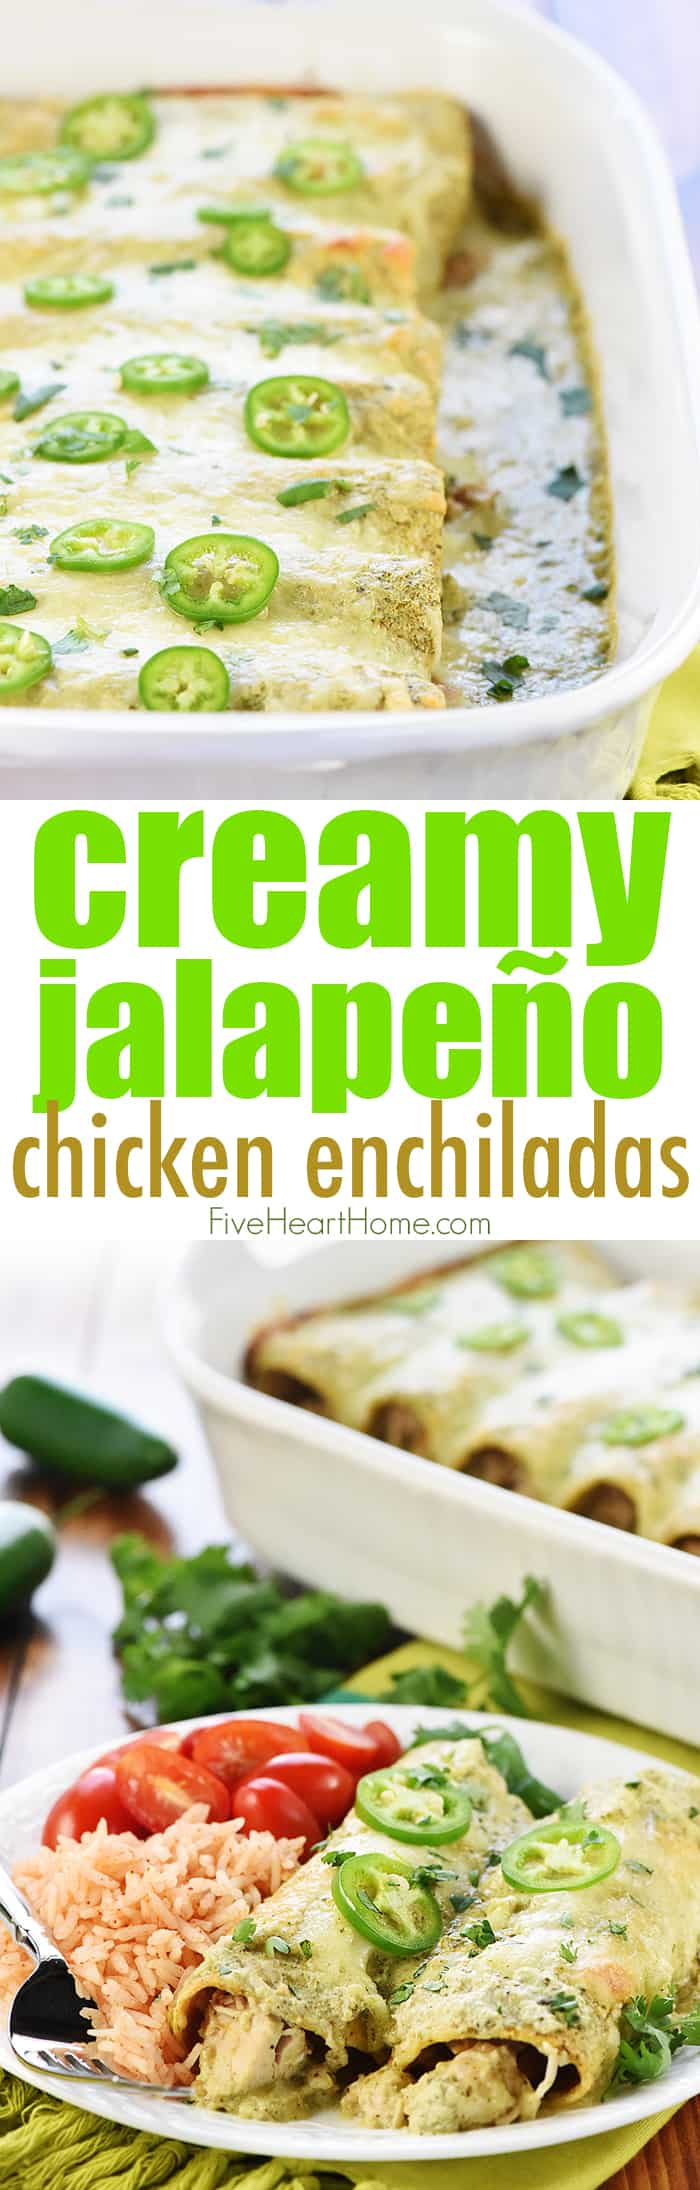 Creamy Jalapeño Chicken Enchiladas ~ cheesy, flavorful, and smothered in copycat Chuy's Creamy Jalapeño Dip for a dinner that's sure to become a family favorite! | FiveHeartHome.com via @fivehearthome